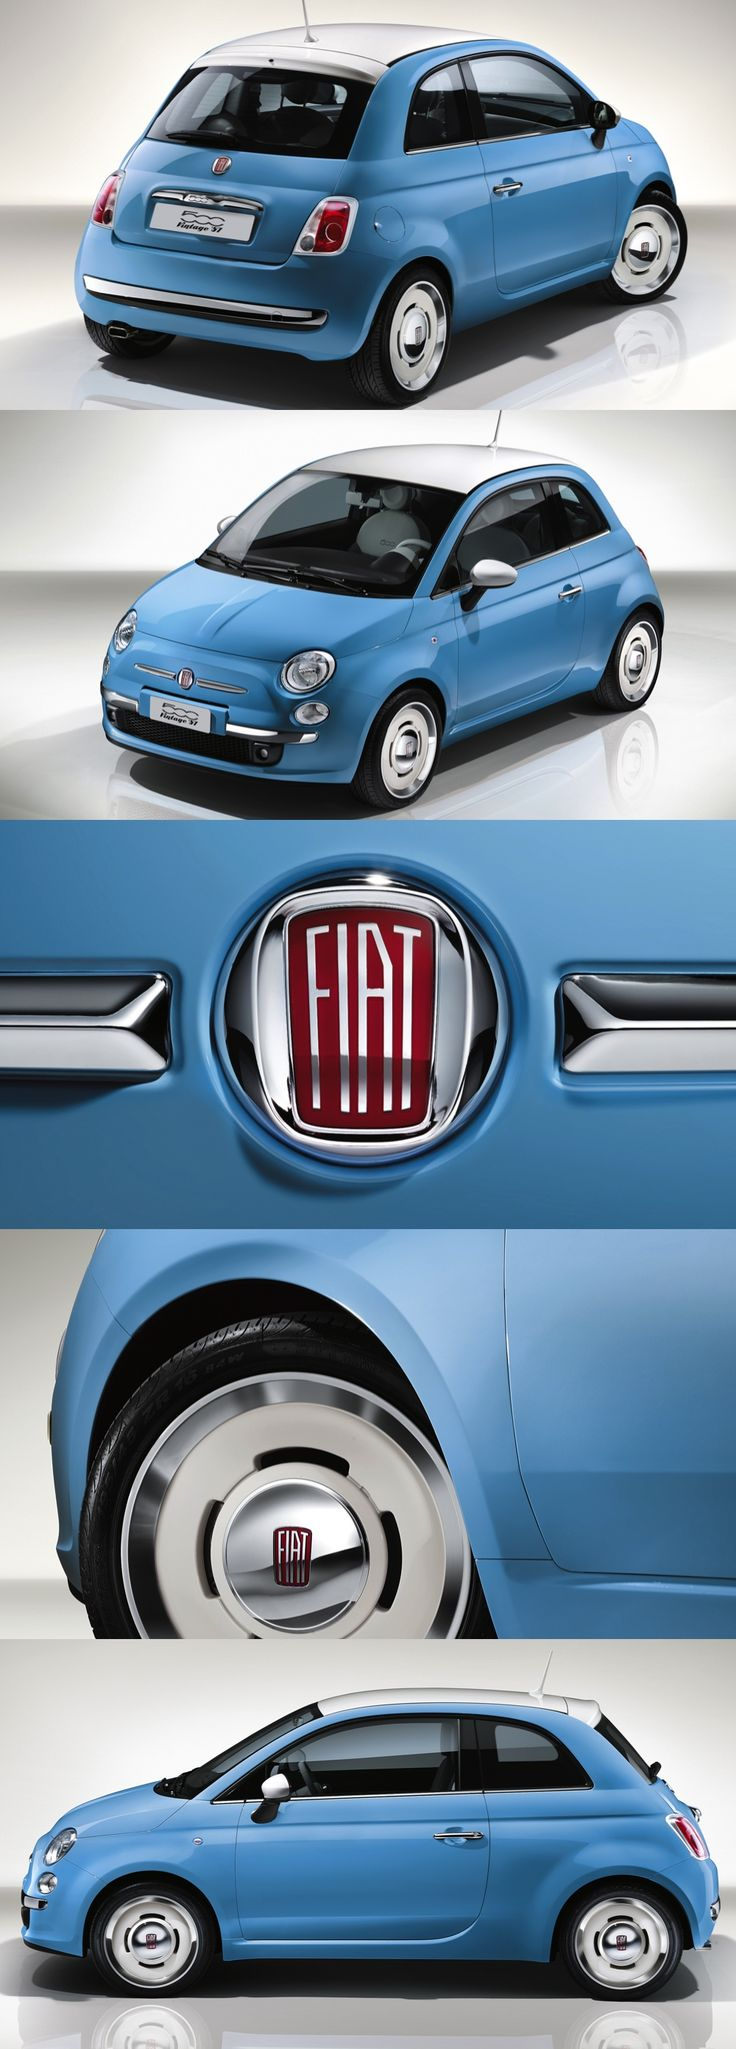 17 best images about fiat 500 on pinterest cars fiat. Black Bedroom Furniture Sets. Home Design Ideas